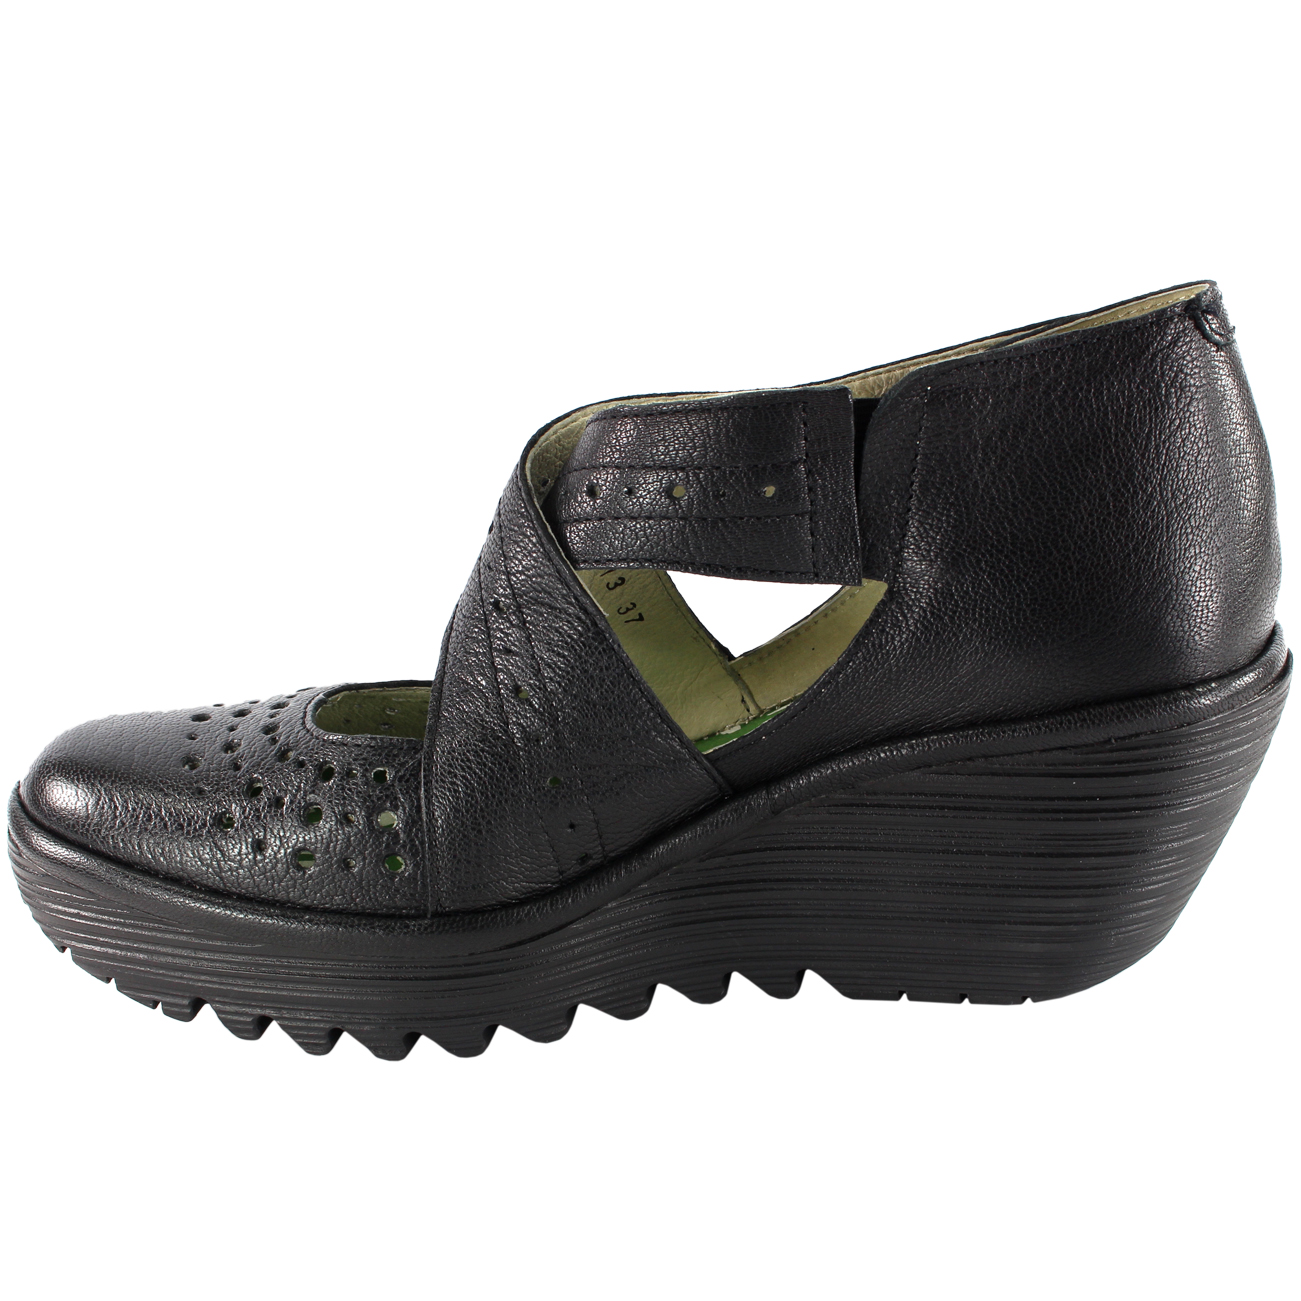 Fly London Womens Wedge Shoes